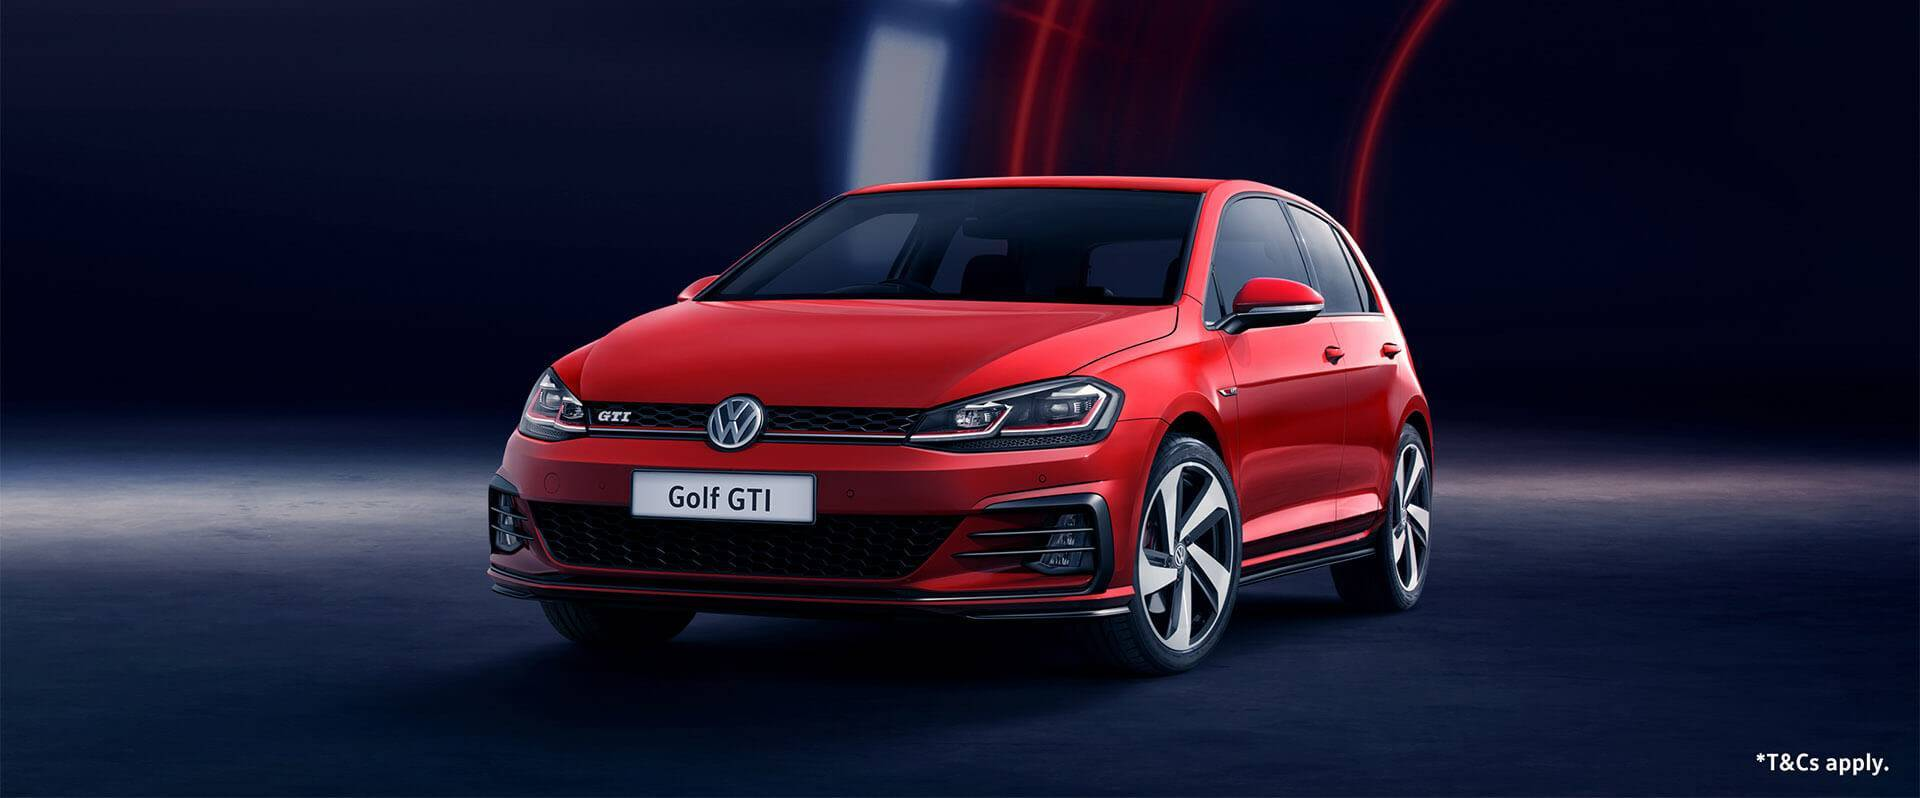 Volkswagen Win a Golf GTI Competition